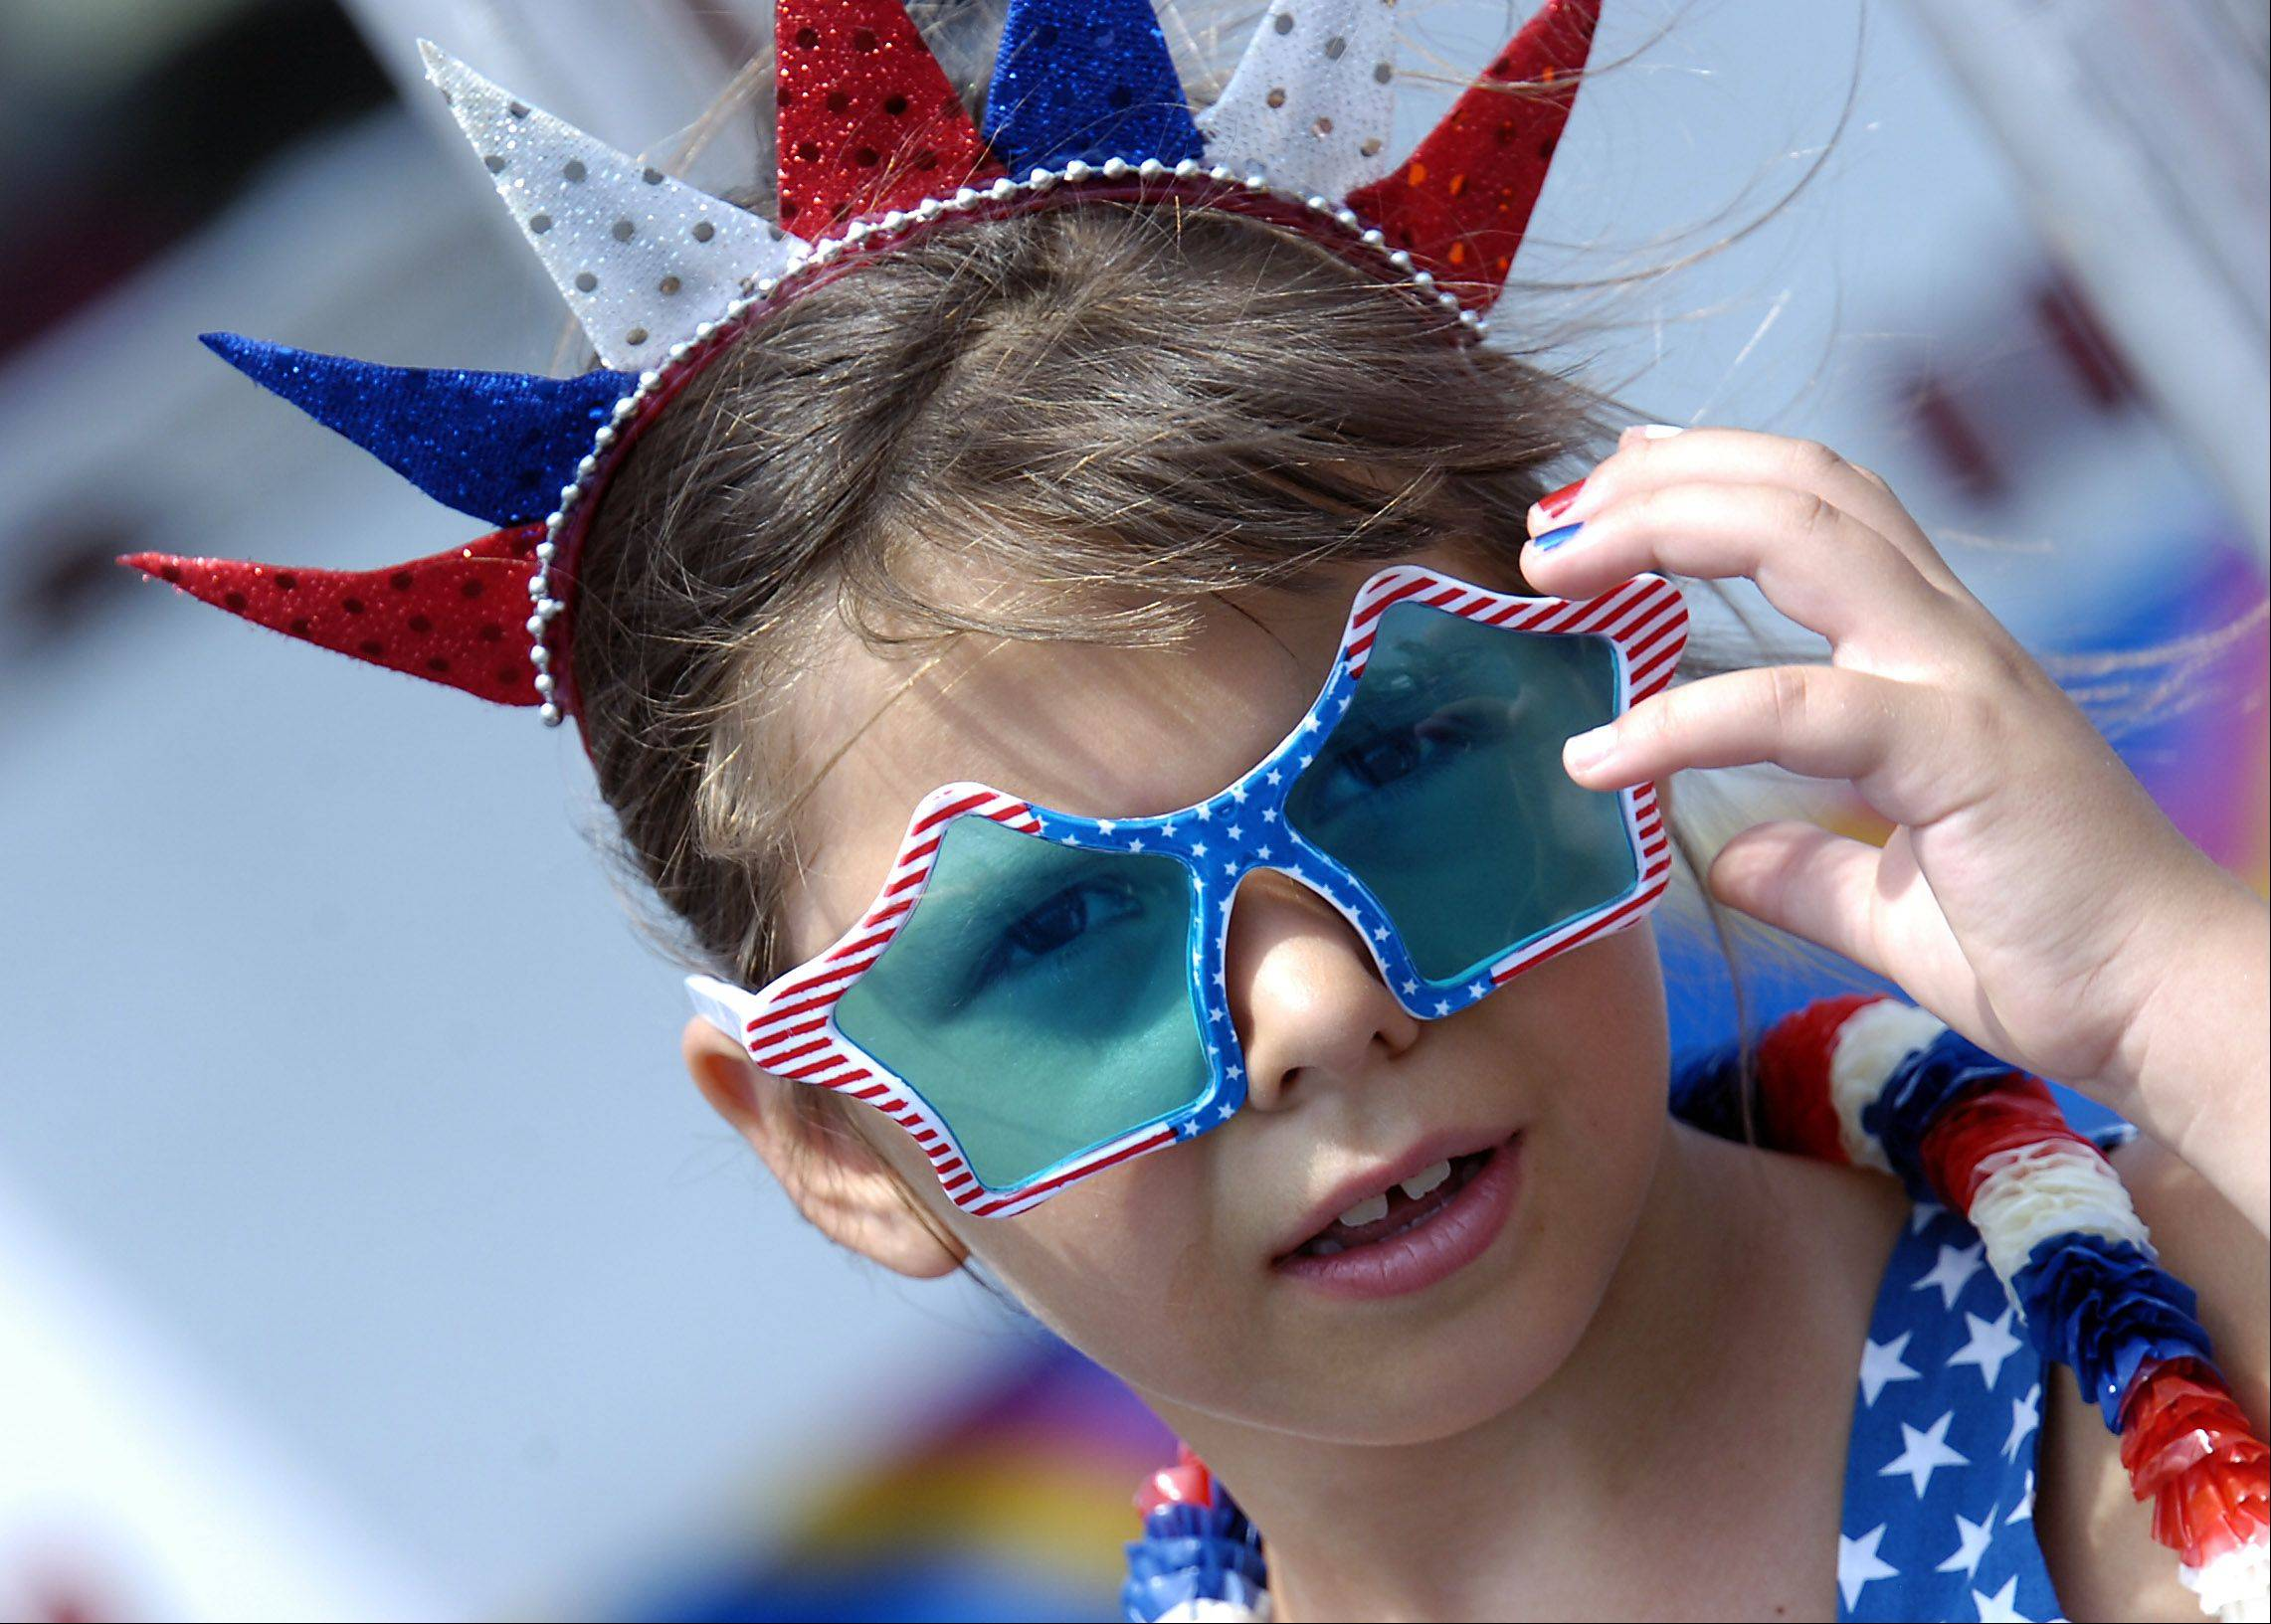 Eliza Incledon, 7, of South Barrington, shows her cool colors in the extreme heat which kept many people away from the first Hoffman Estates Northwest Fourth Fest held at the Sears Centre Arena on Wednesday.